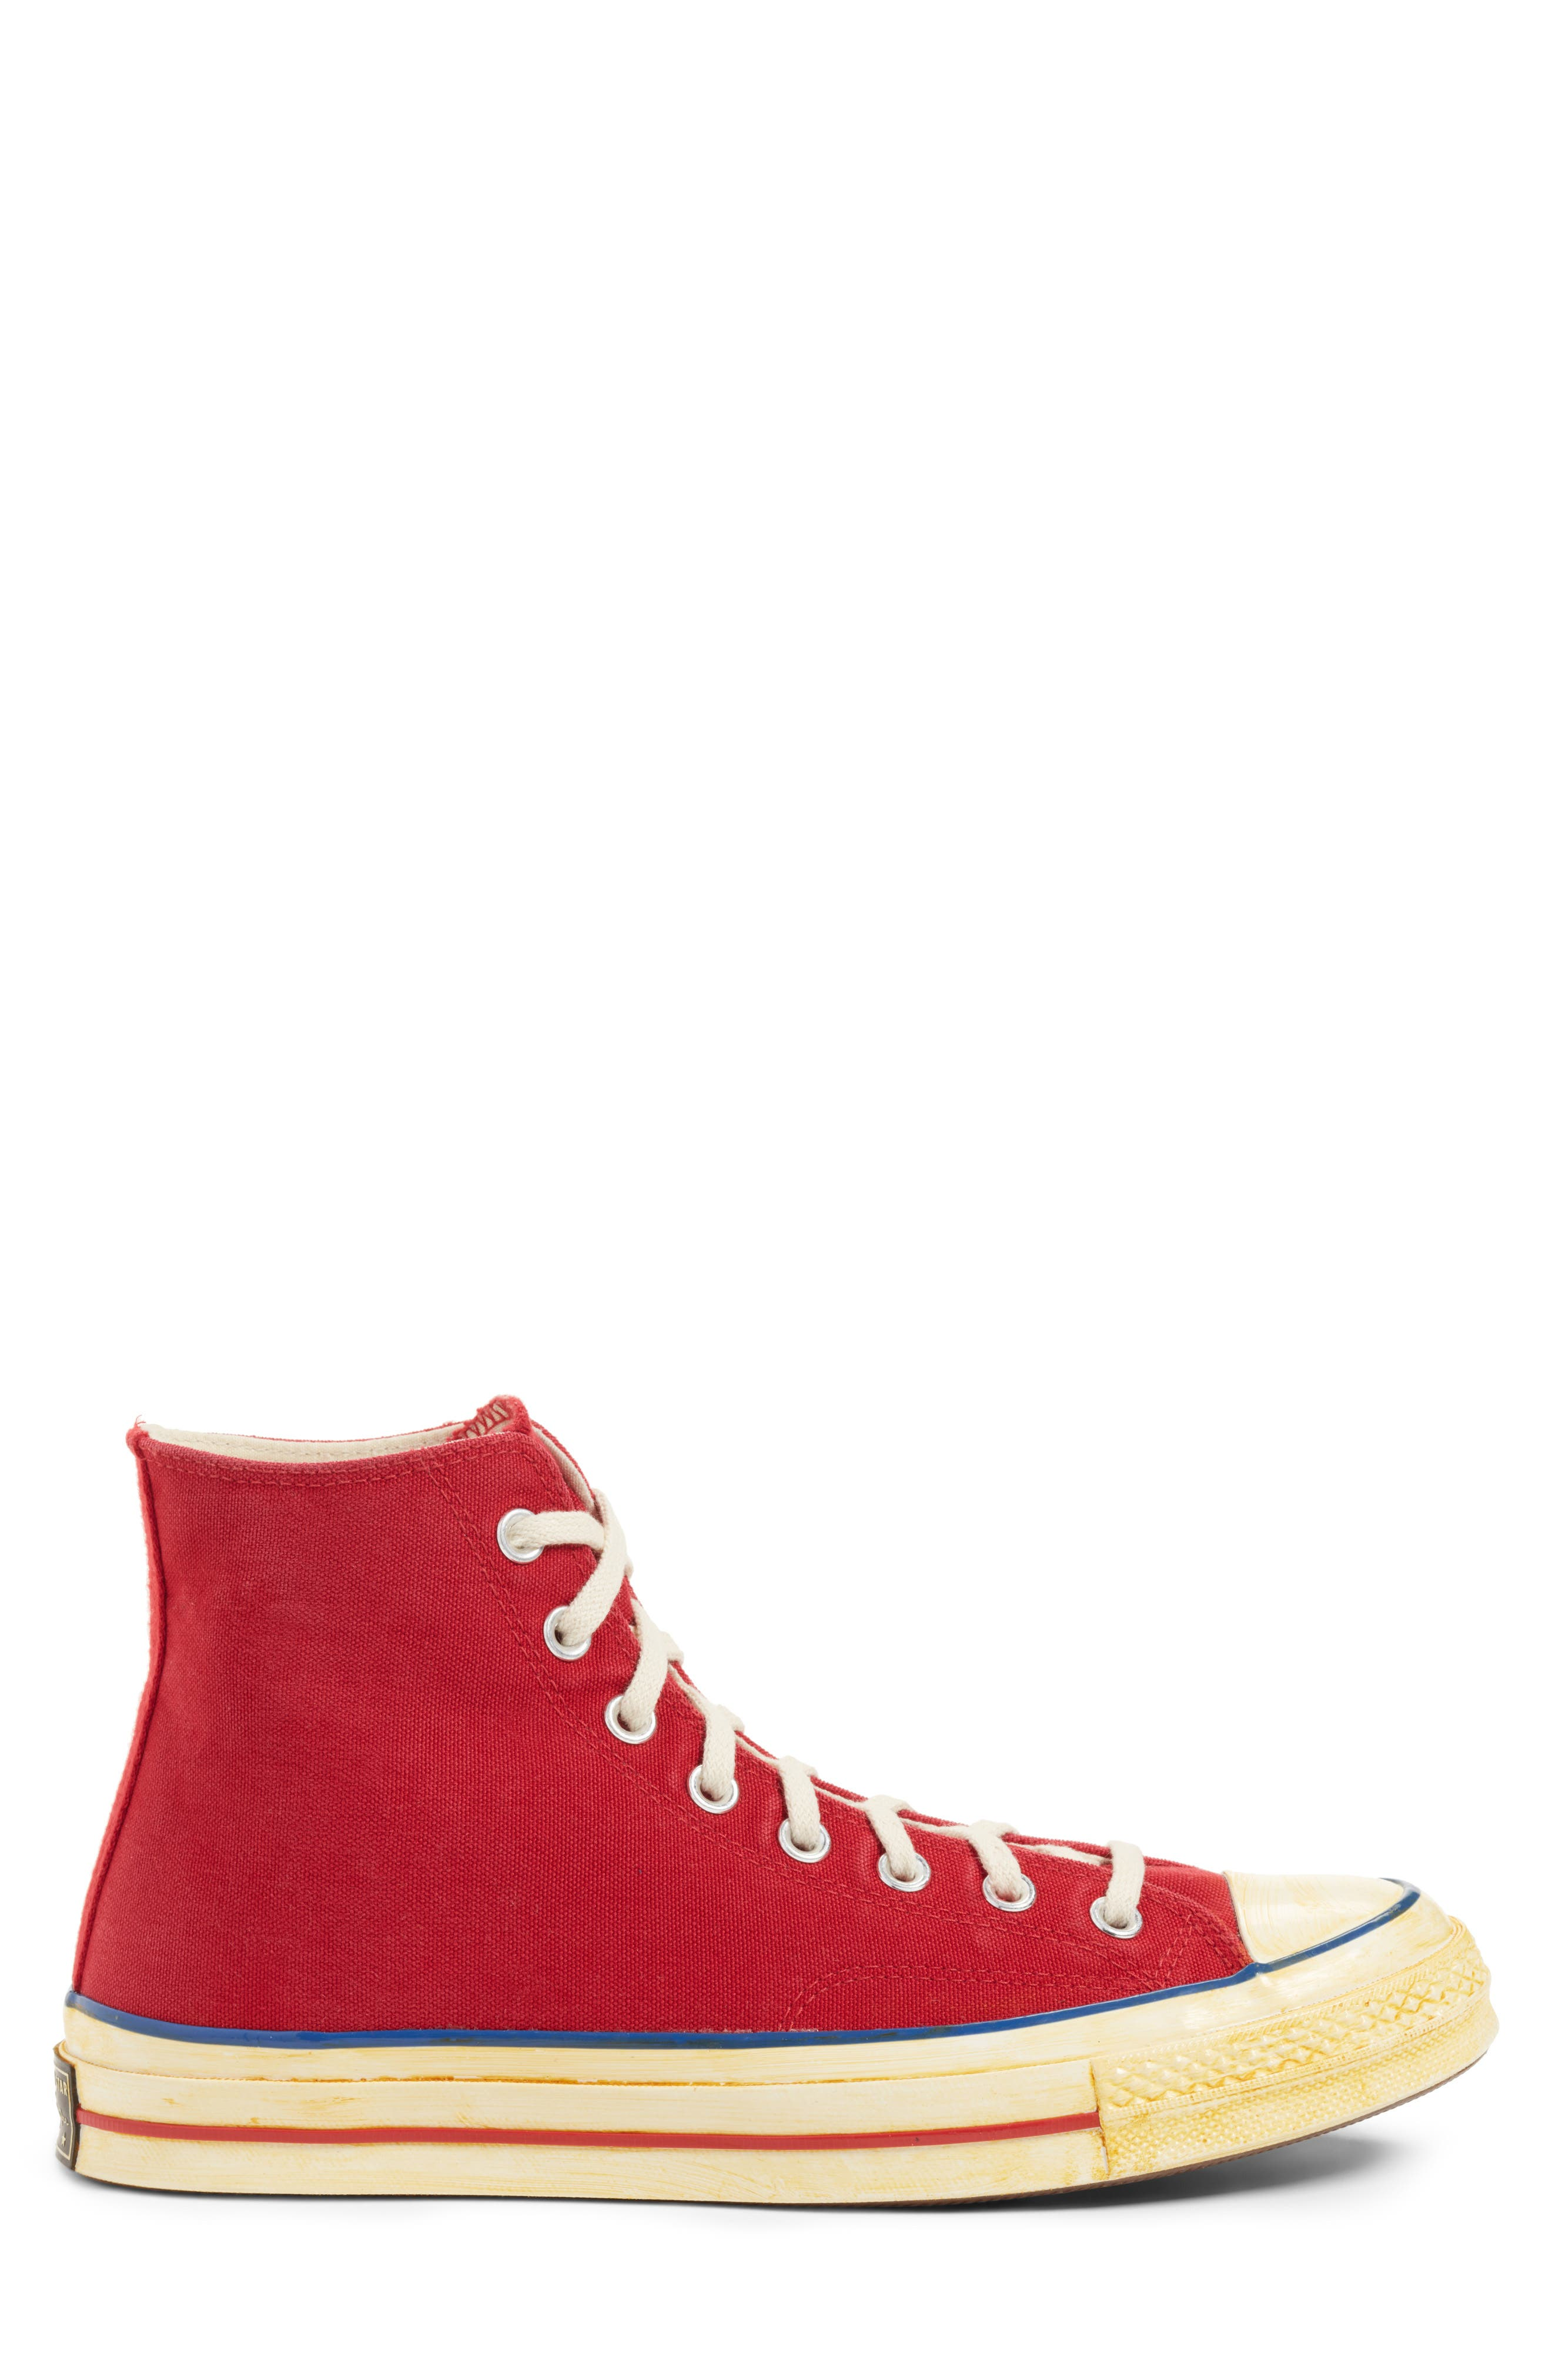 Chuck Taylor<sup>®</sup> All Star<sup>®</sup> 70 High Top Sneaker,                             Alternate thumbnail 3, color,                             608